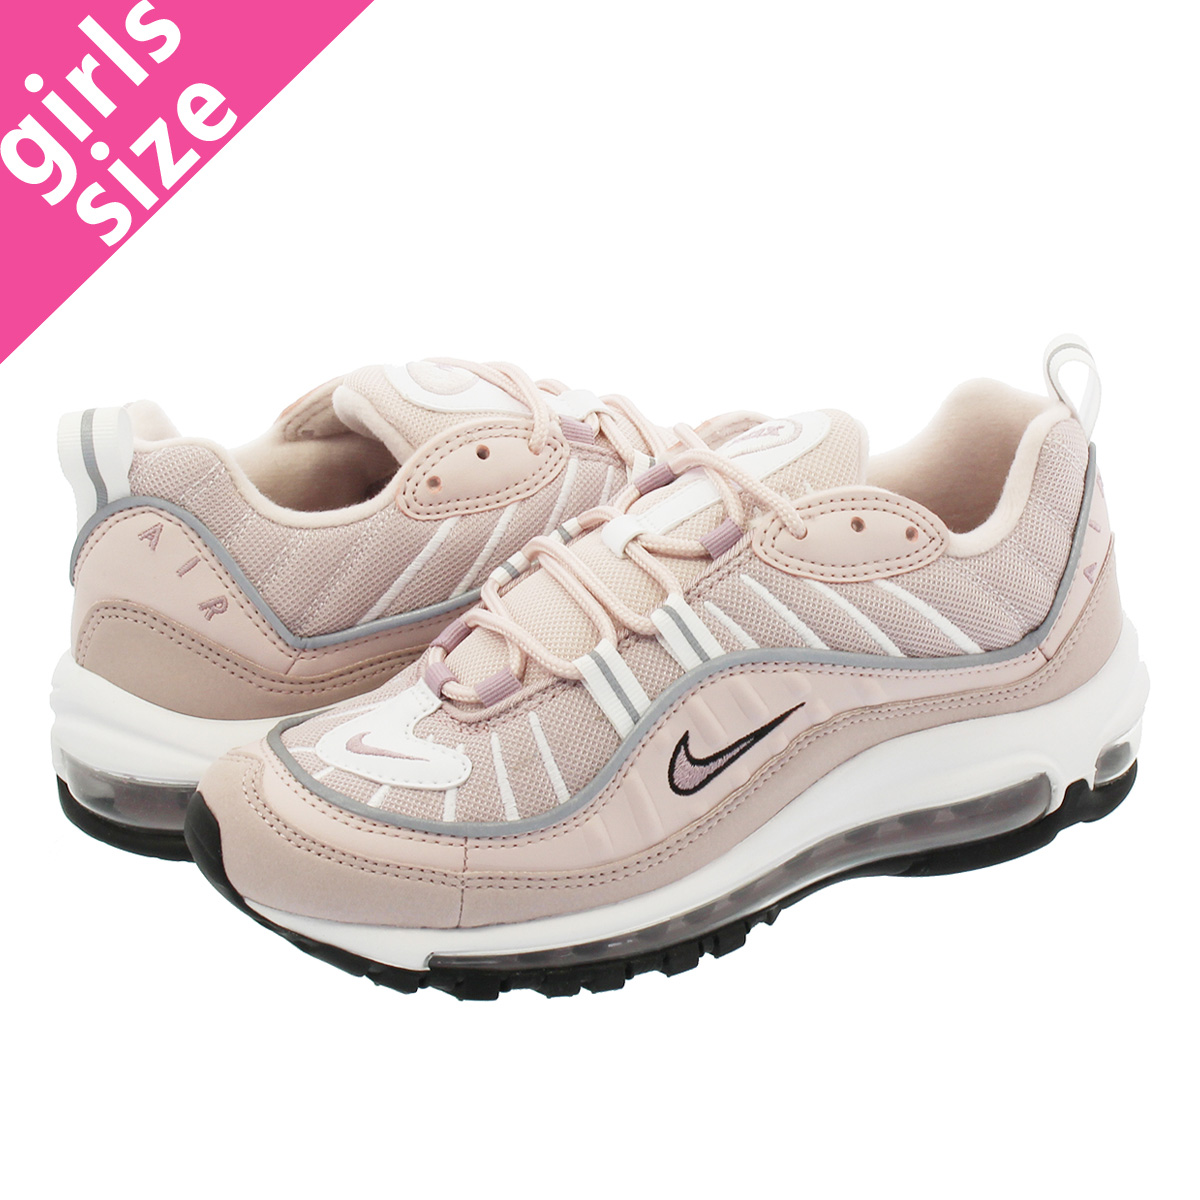 NIKE WMNS AIR MAX 98 Nike women Air Max 98 BARELY ROSE/ELEMENTAL ROSE/PARTICLE ROSE